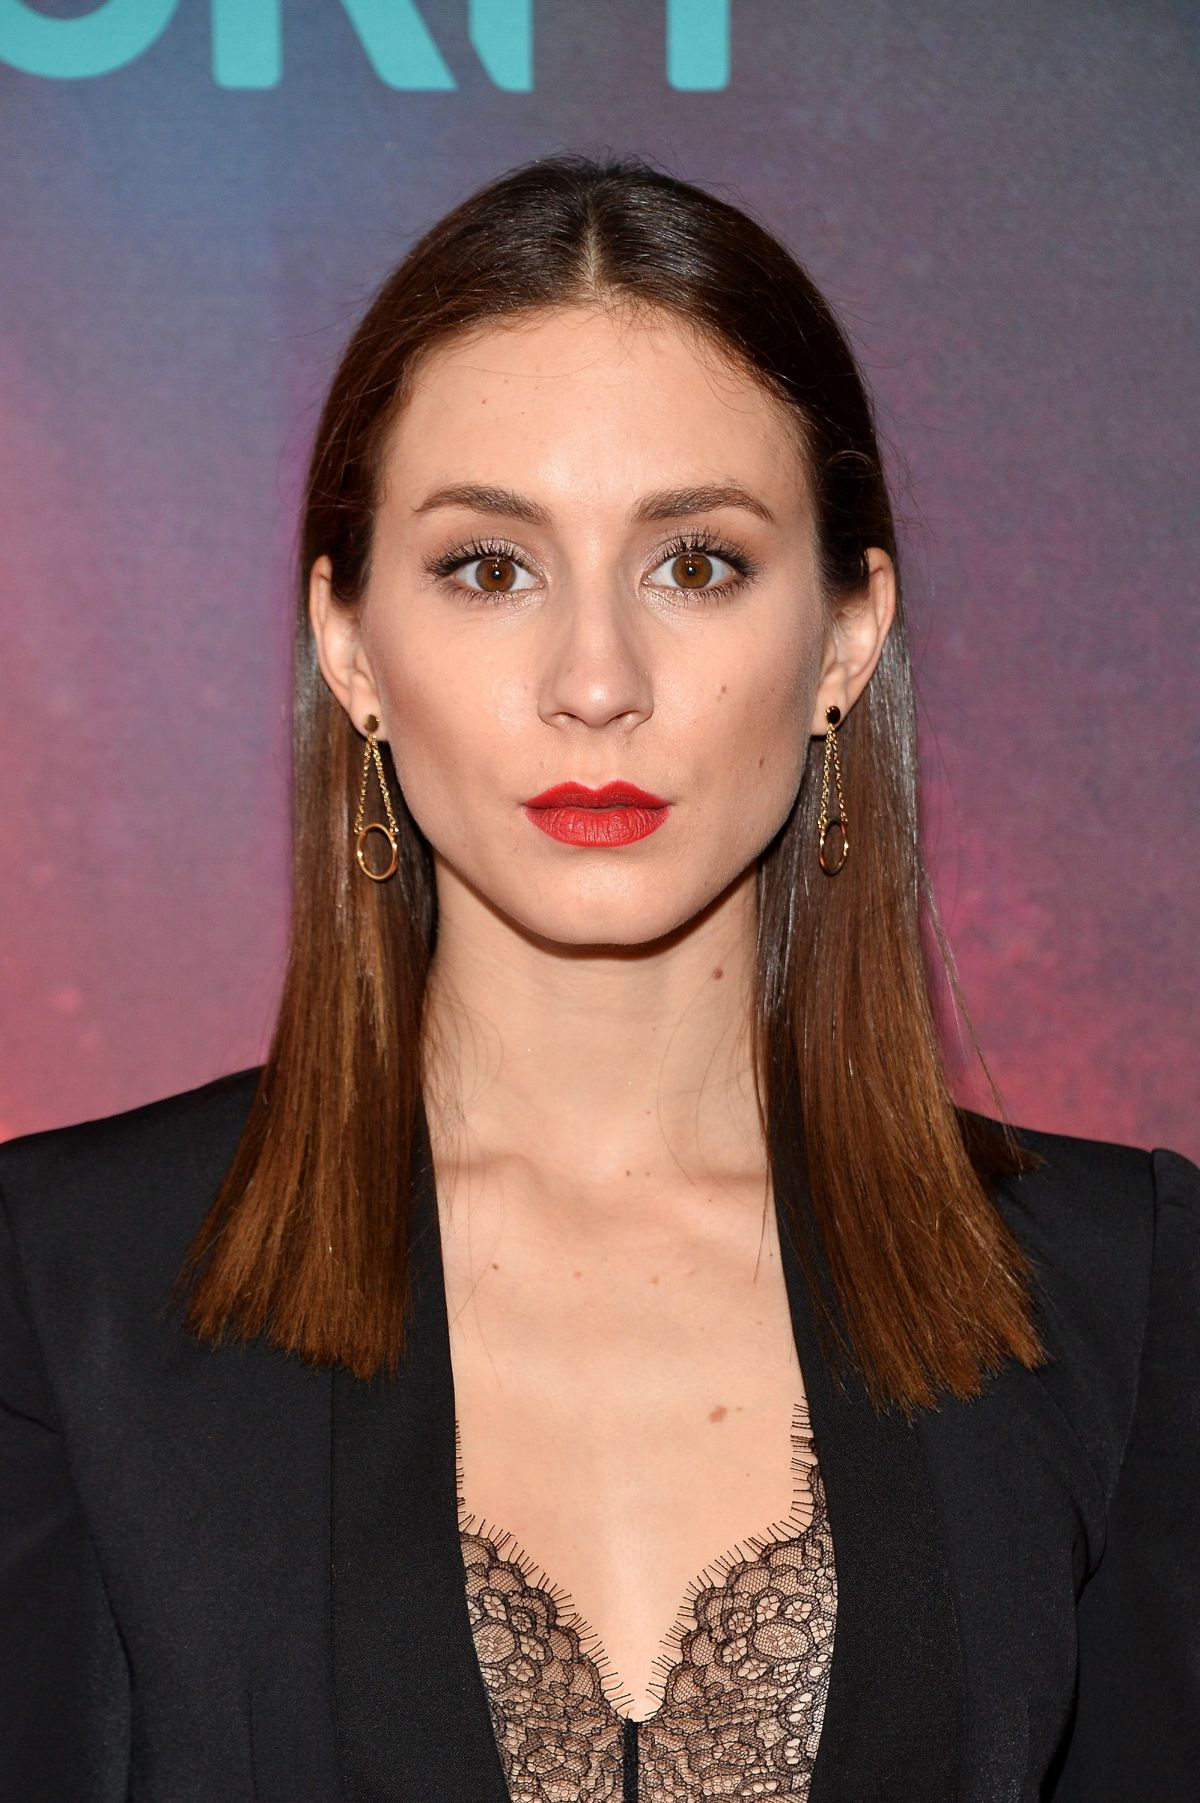 Troian Bellisario At 2017 Freeform Upfront in NYC   troian-bellisario-at-2017-freeform-upfront-in-nyc_3